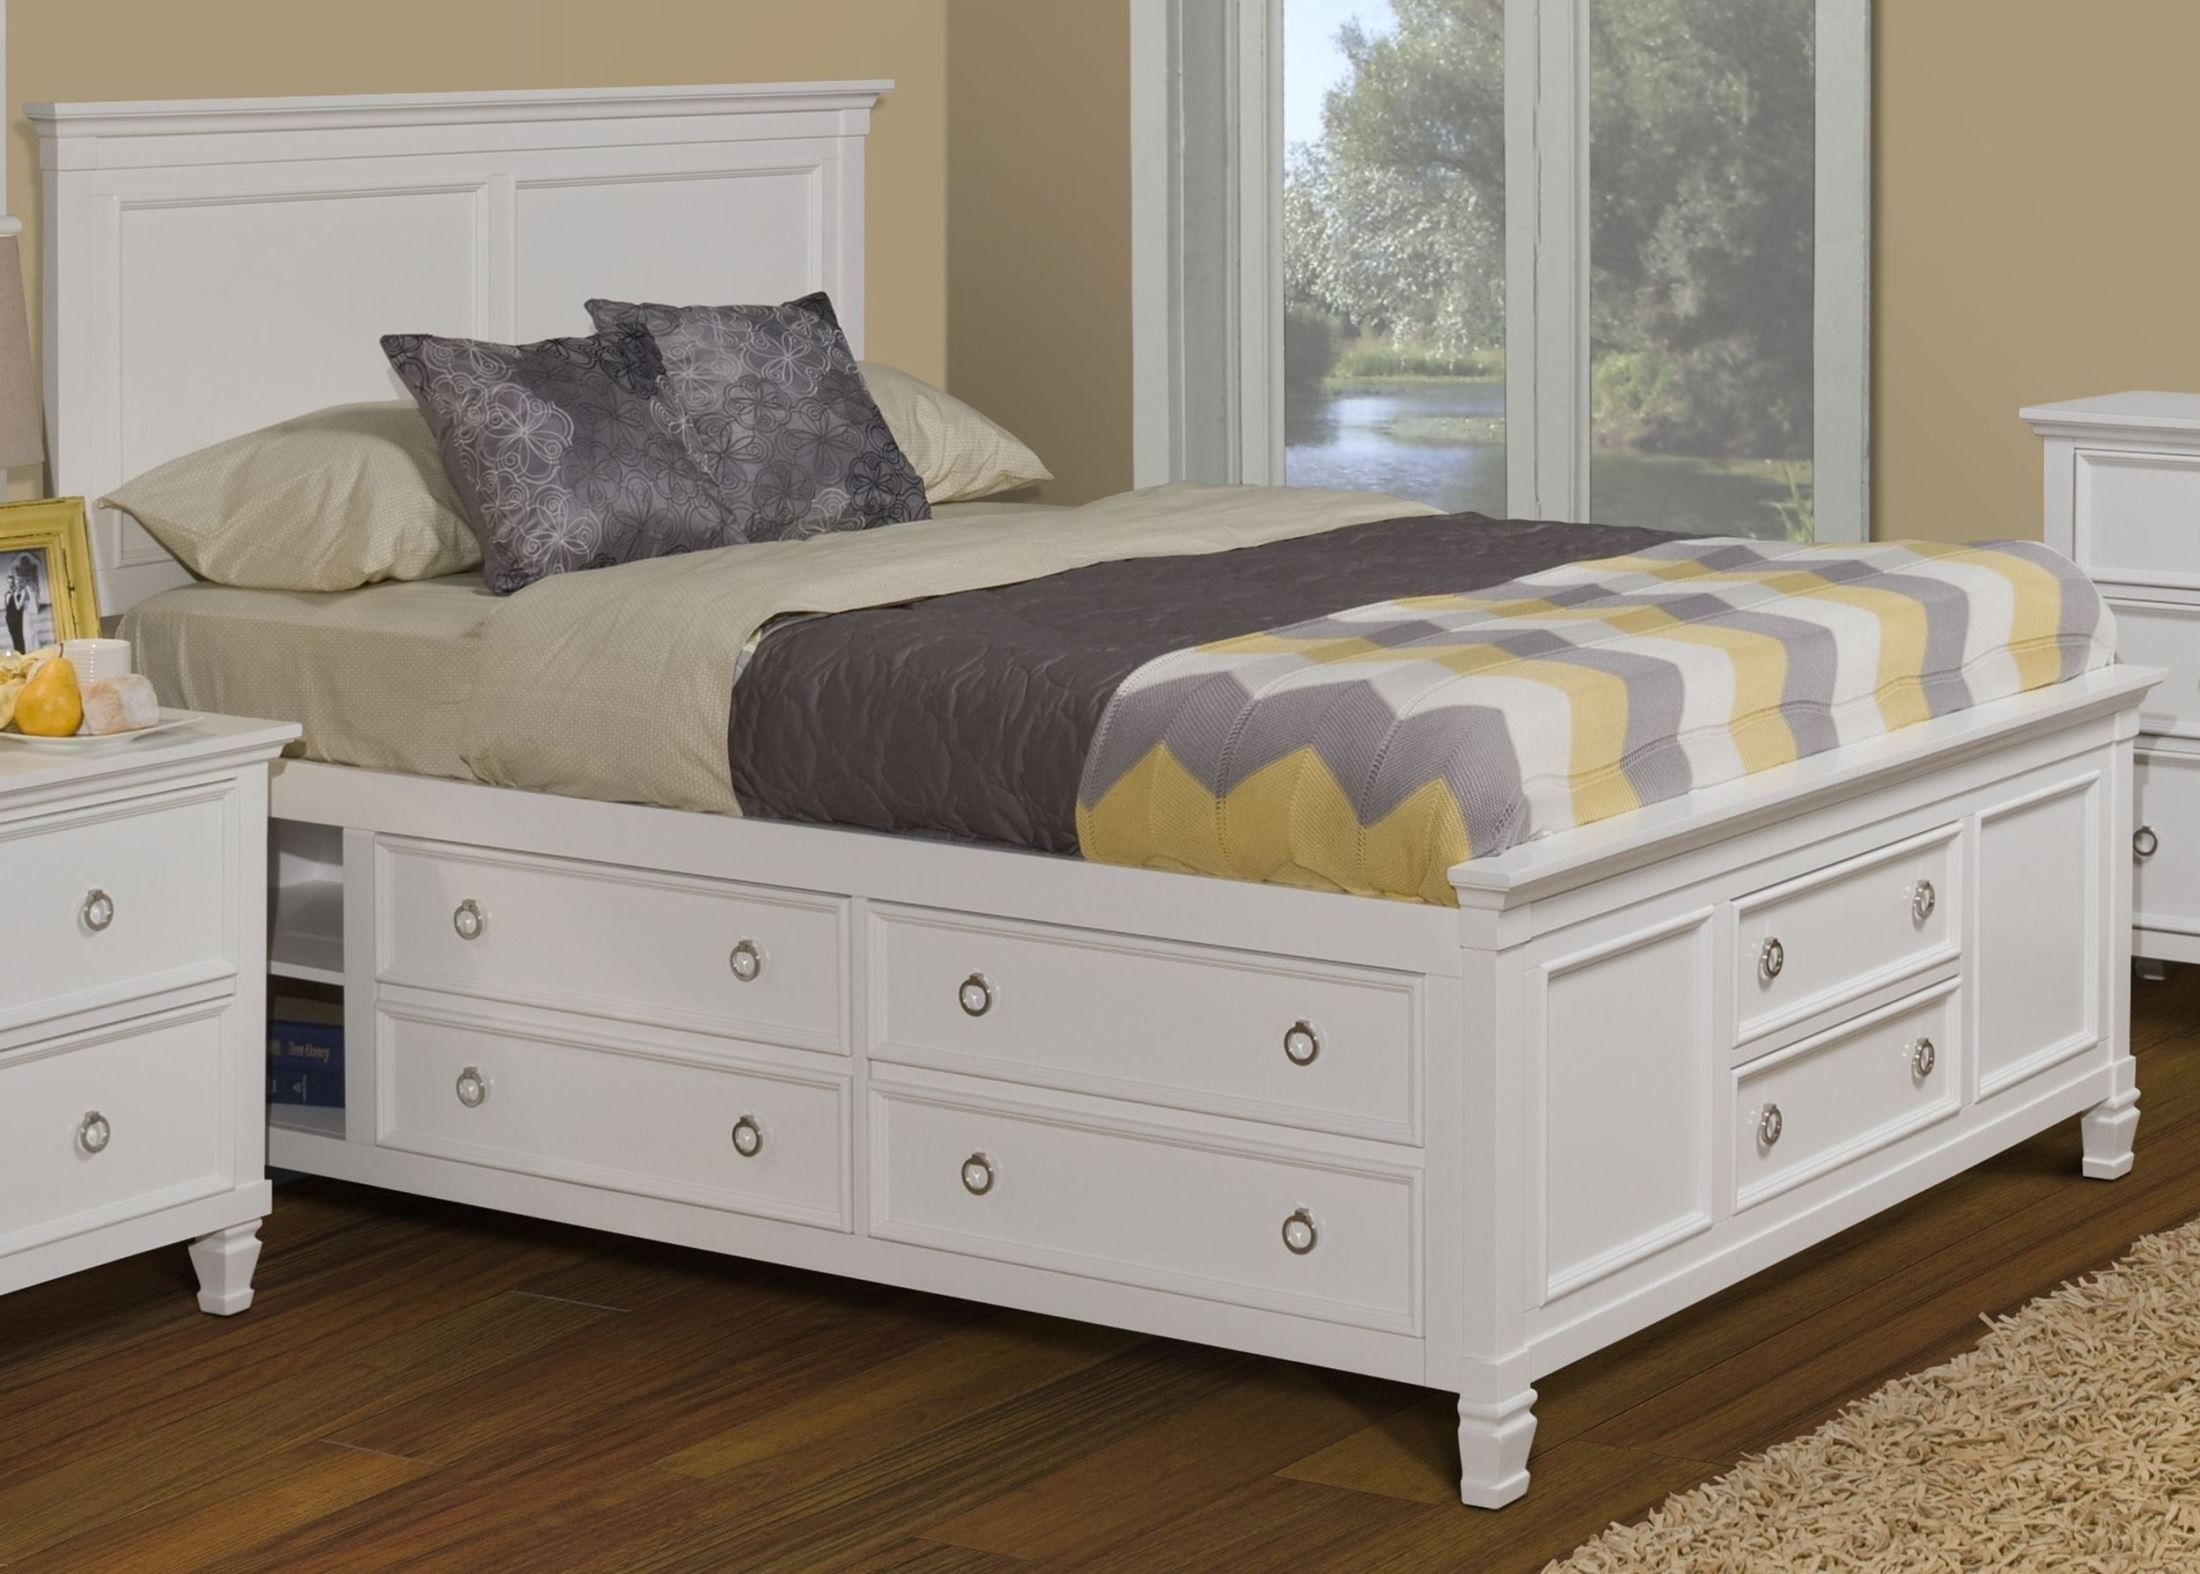 Tamarack White King Platform Storage Bed